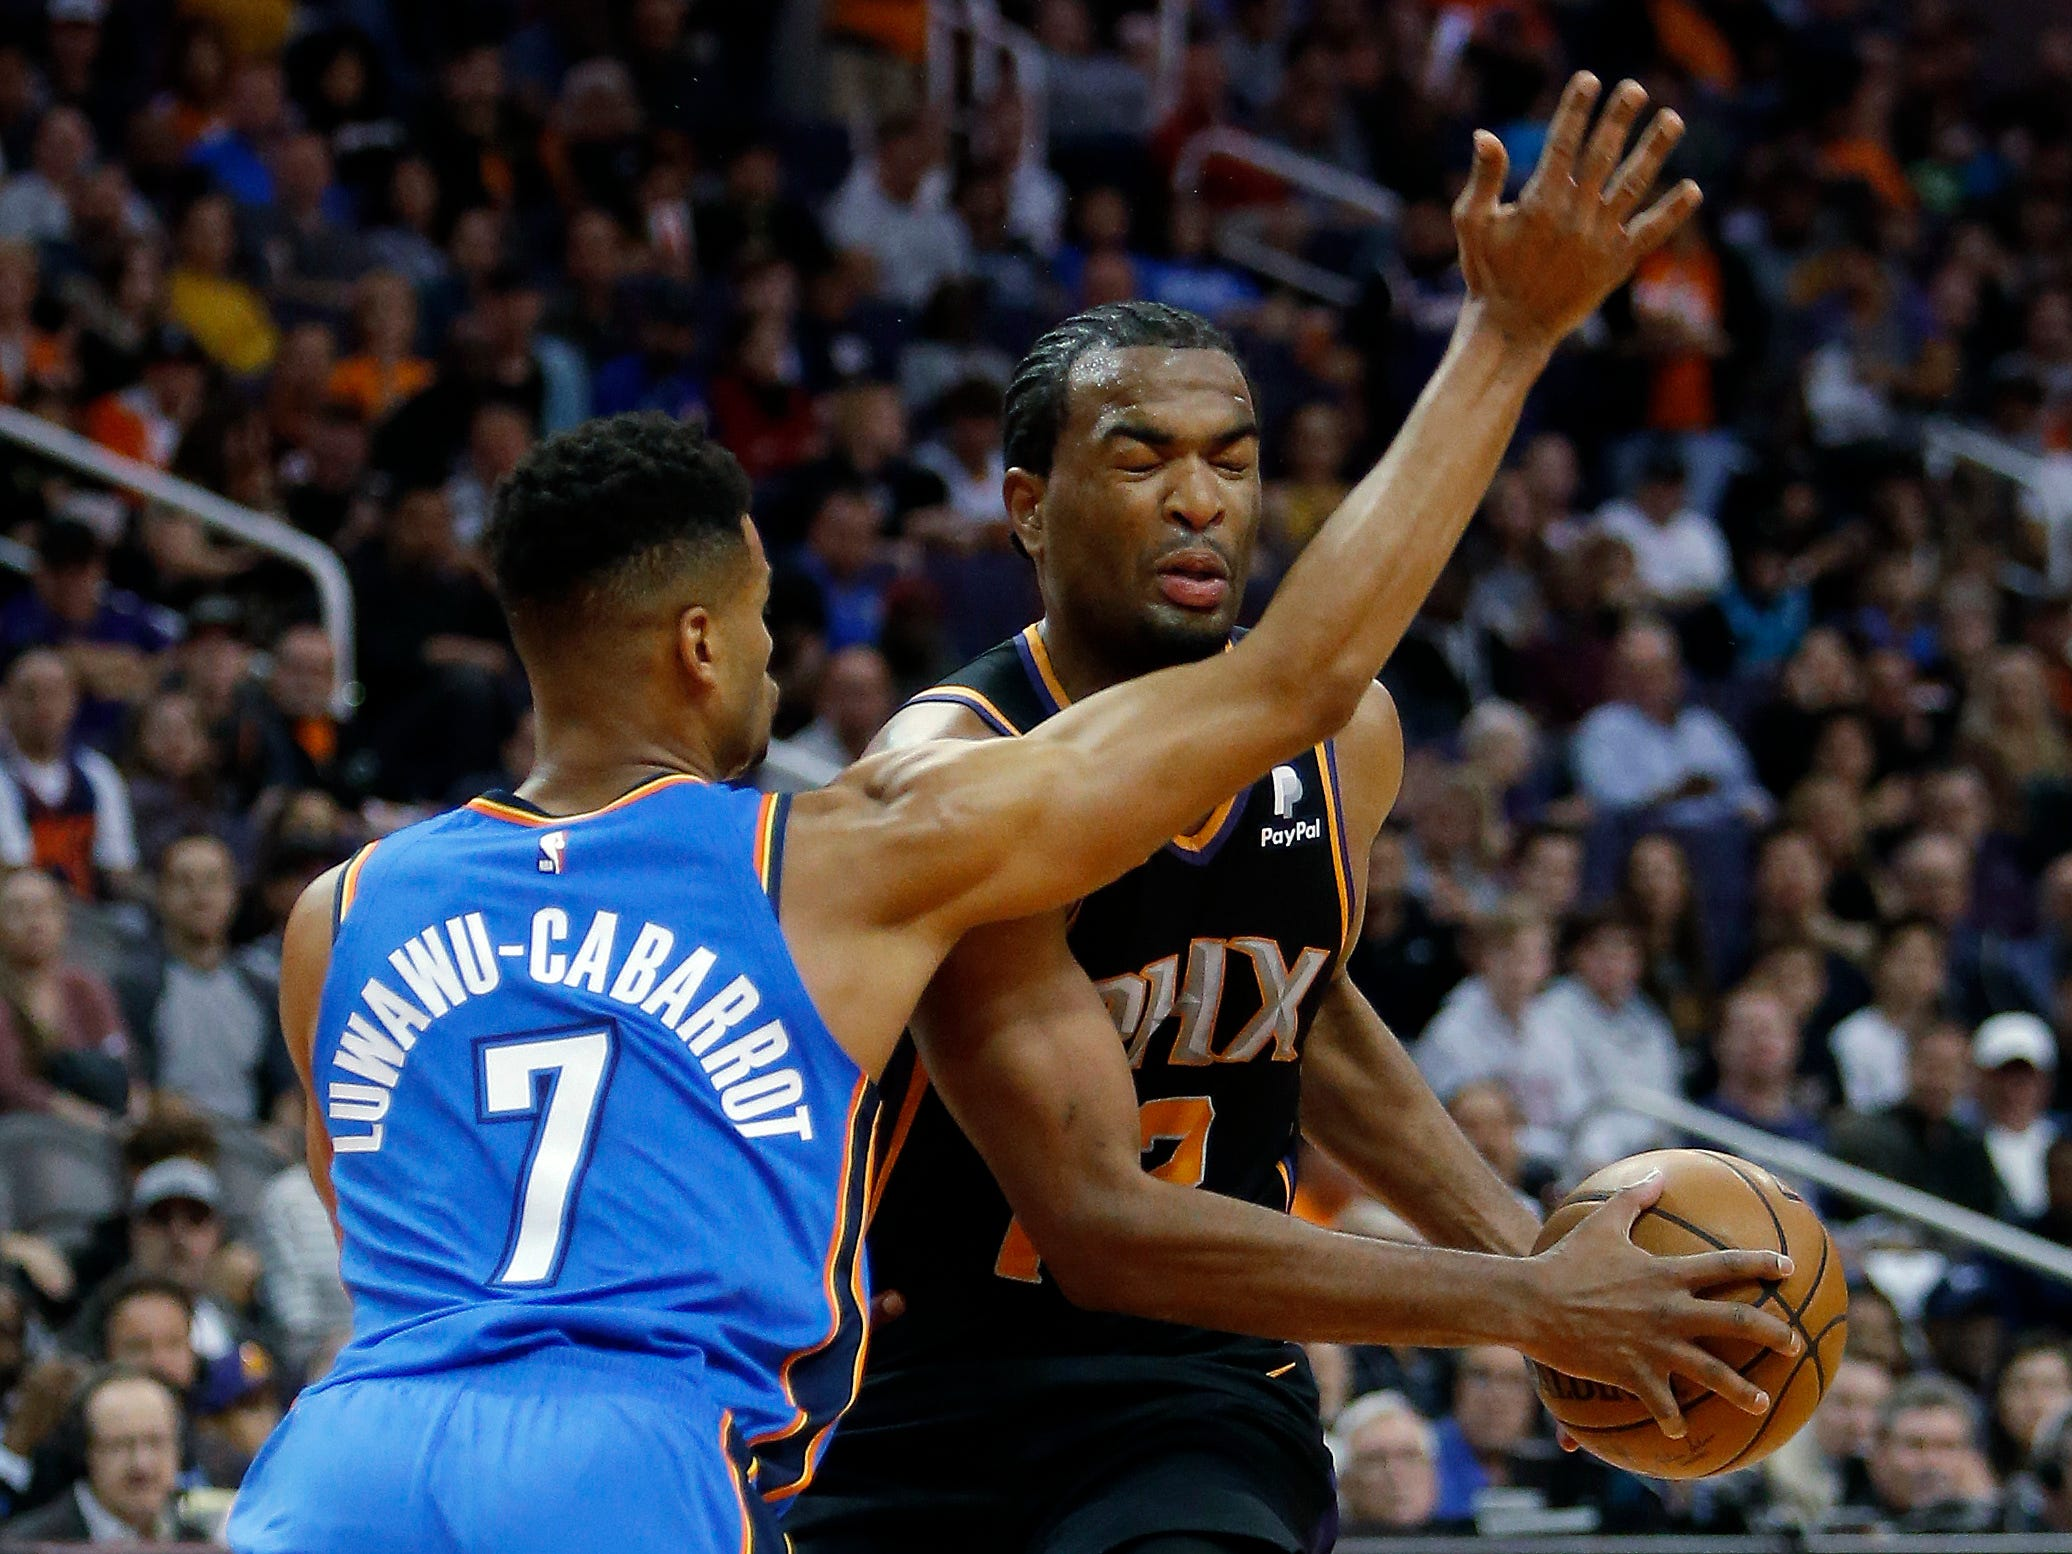 Phoenix Suns forward TJ Warren gets hit in the face by Oklahoma City Thunder guard Timothe Luwawu-Cabarrot (7) on a drive to the basket during the first half of an NBA basketball game Saturday, Nov. 17, 2018, in Phoenix. (AP Photo/Rick Scuteri)